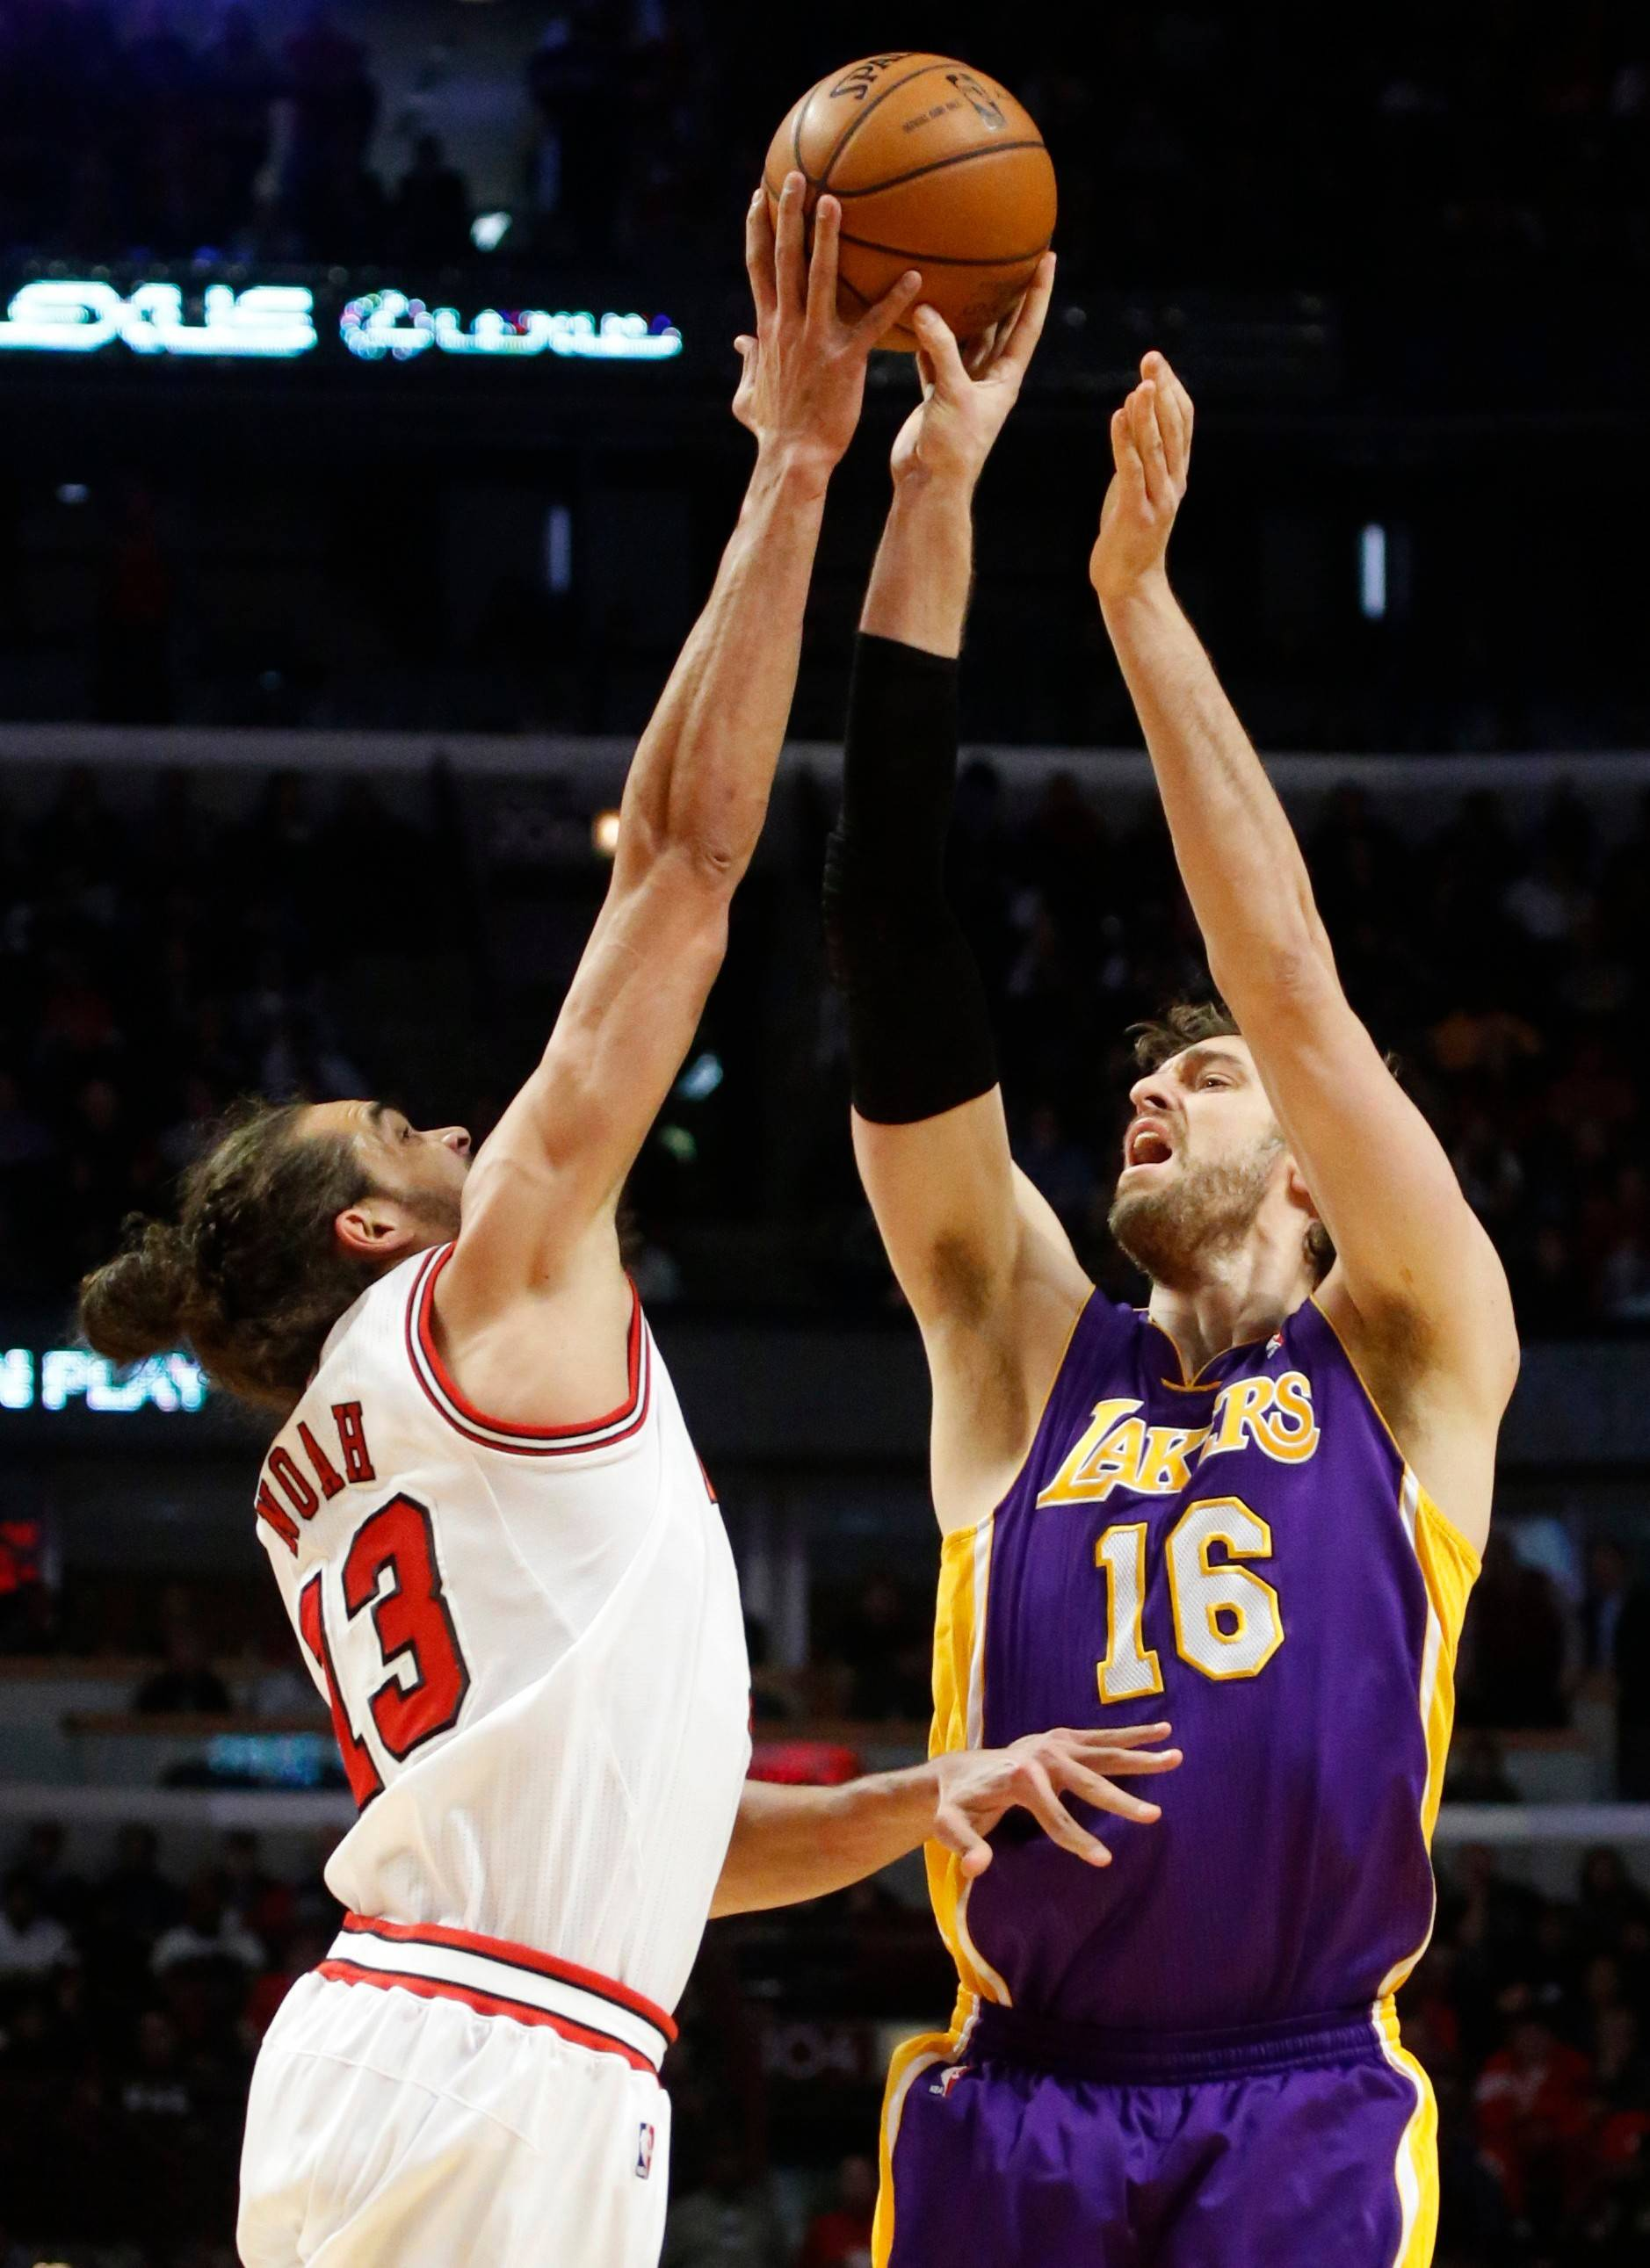 Instead of blocking his shot, Bulls center Joakim Noah will be joining forces next season with former Lakers forward Pau Gasol, who agreed to terms Saturday. Carmelo Anthony, the Bulls' top free-agent target, announced he was staying with the New York Knicks.